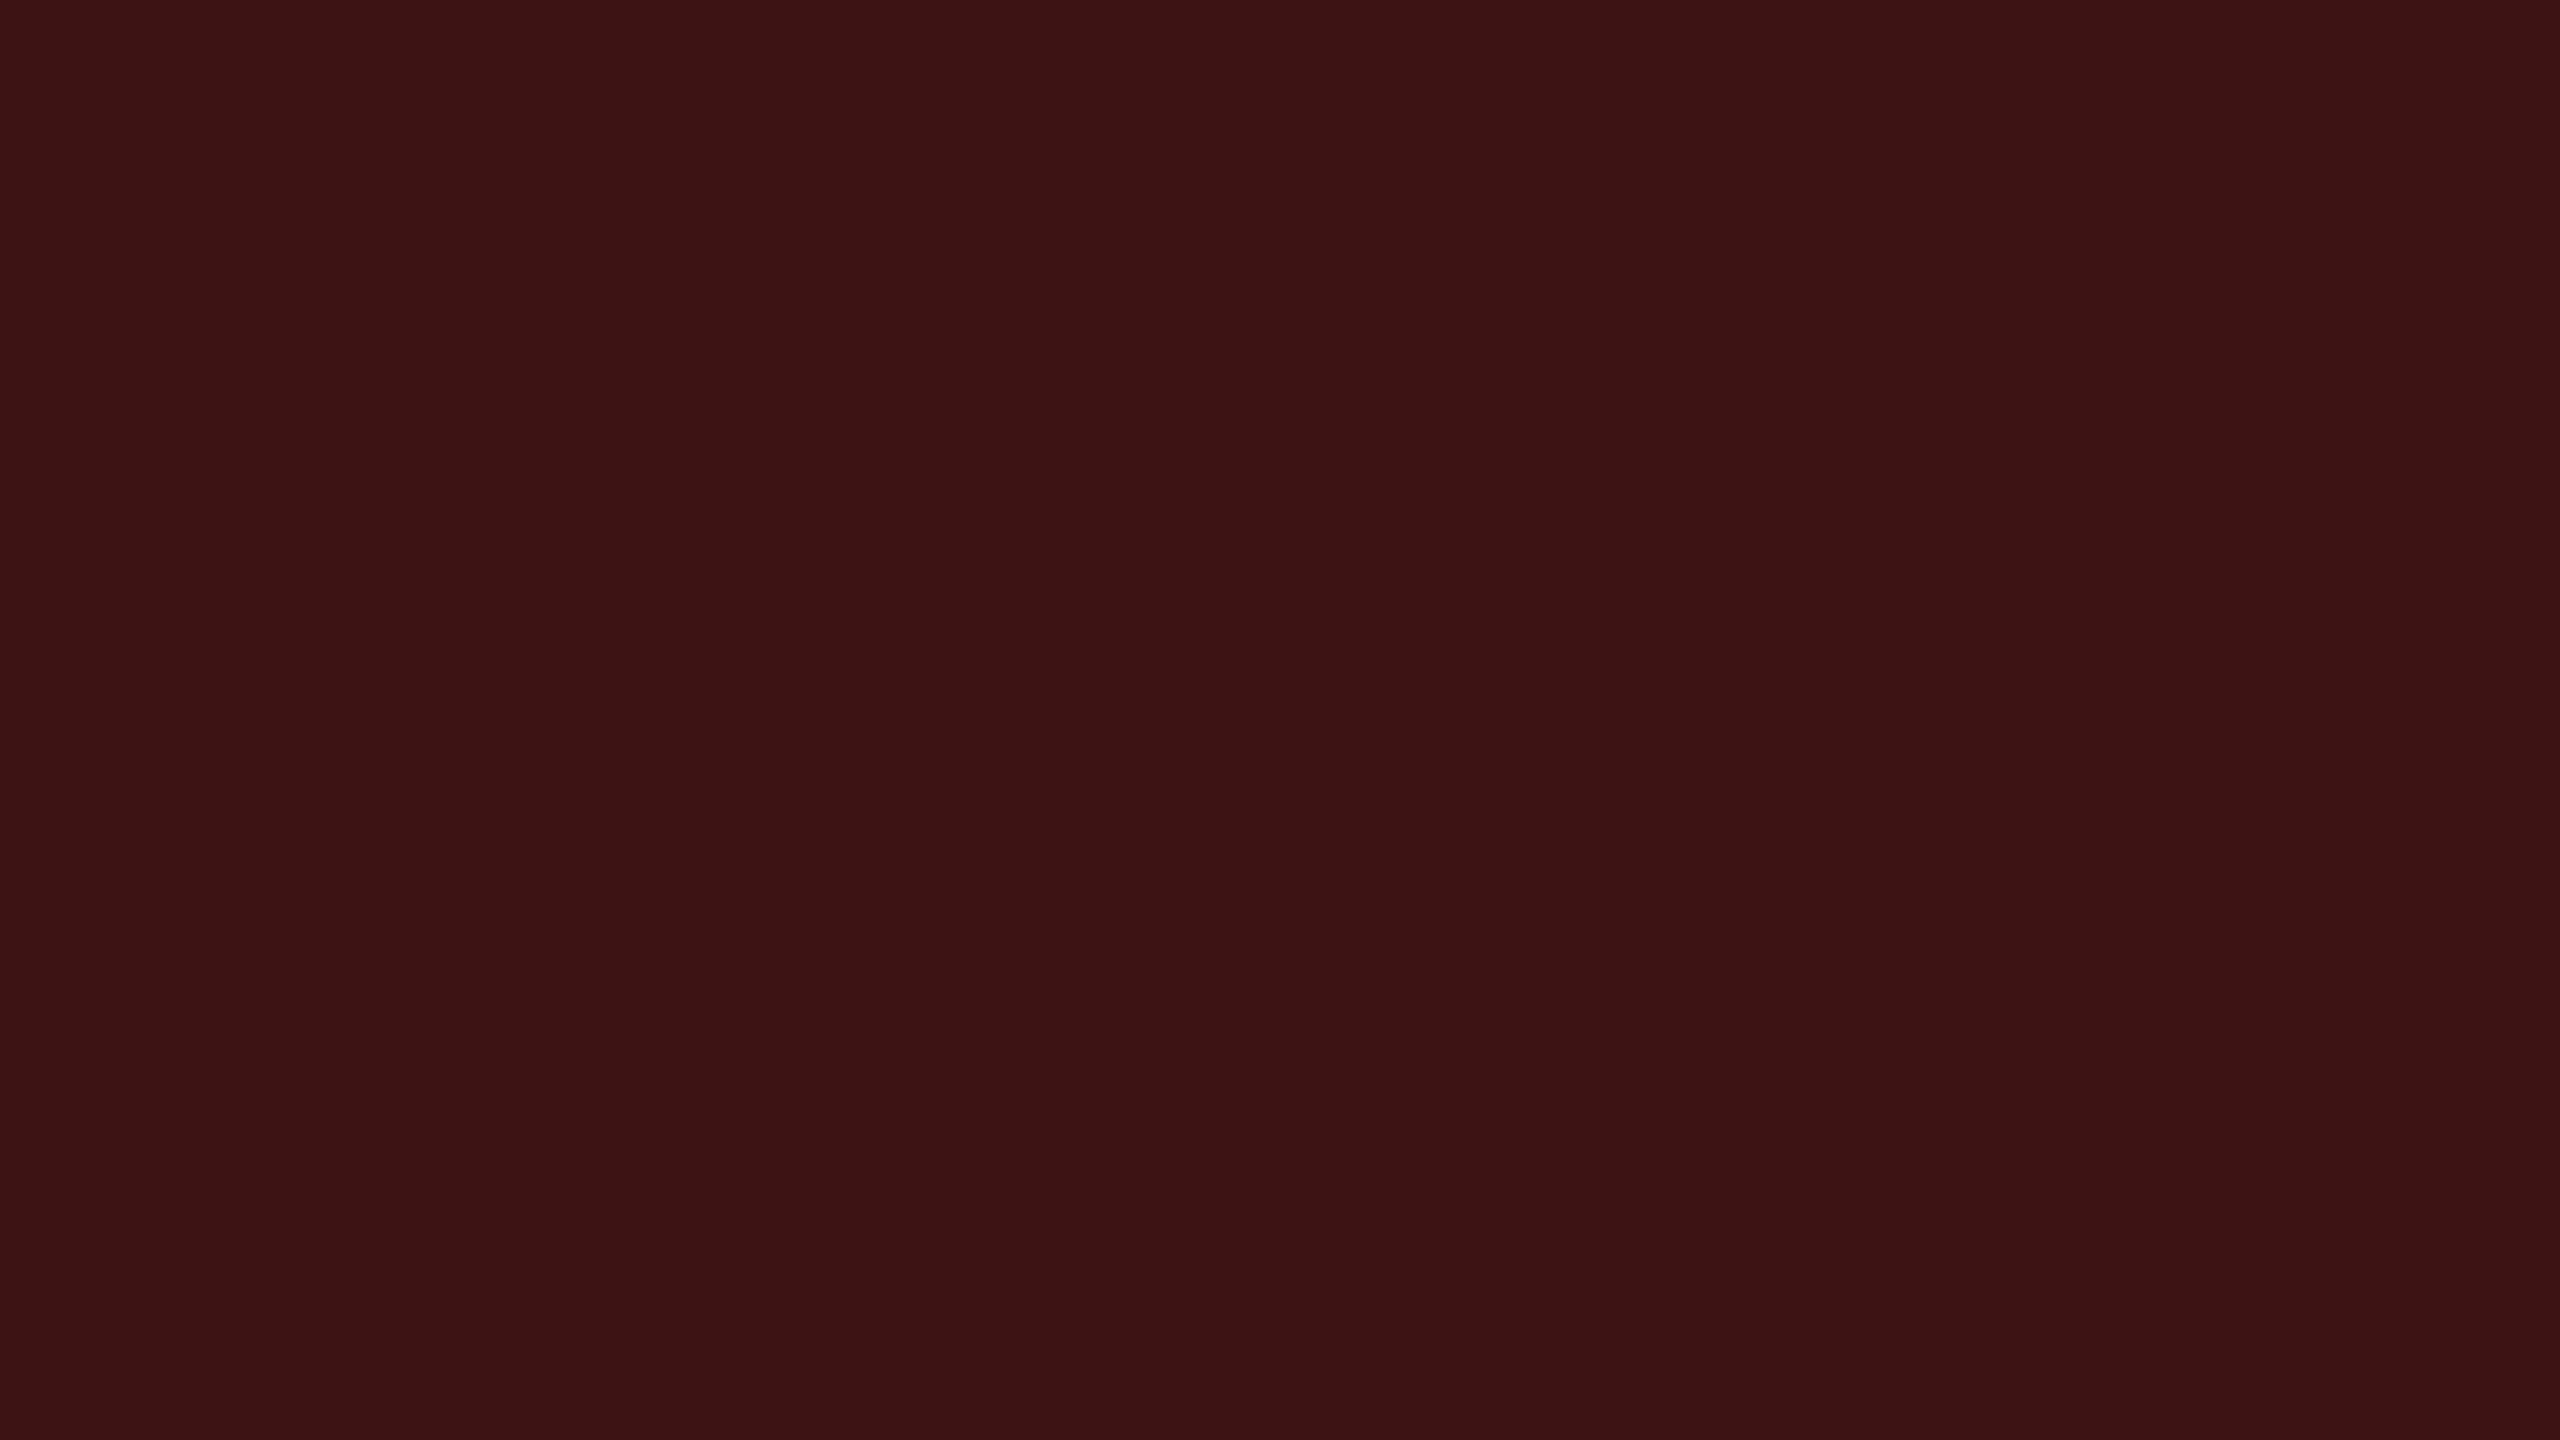 2560x1440 dark sienna solid color background 2560x1440 dark sienna solid color